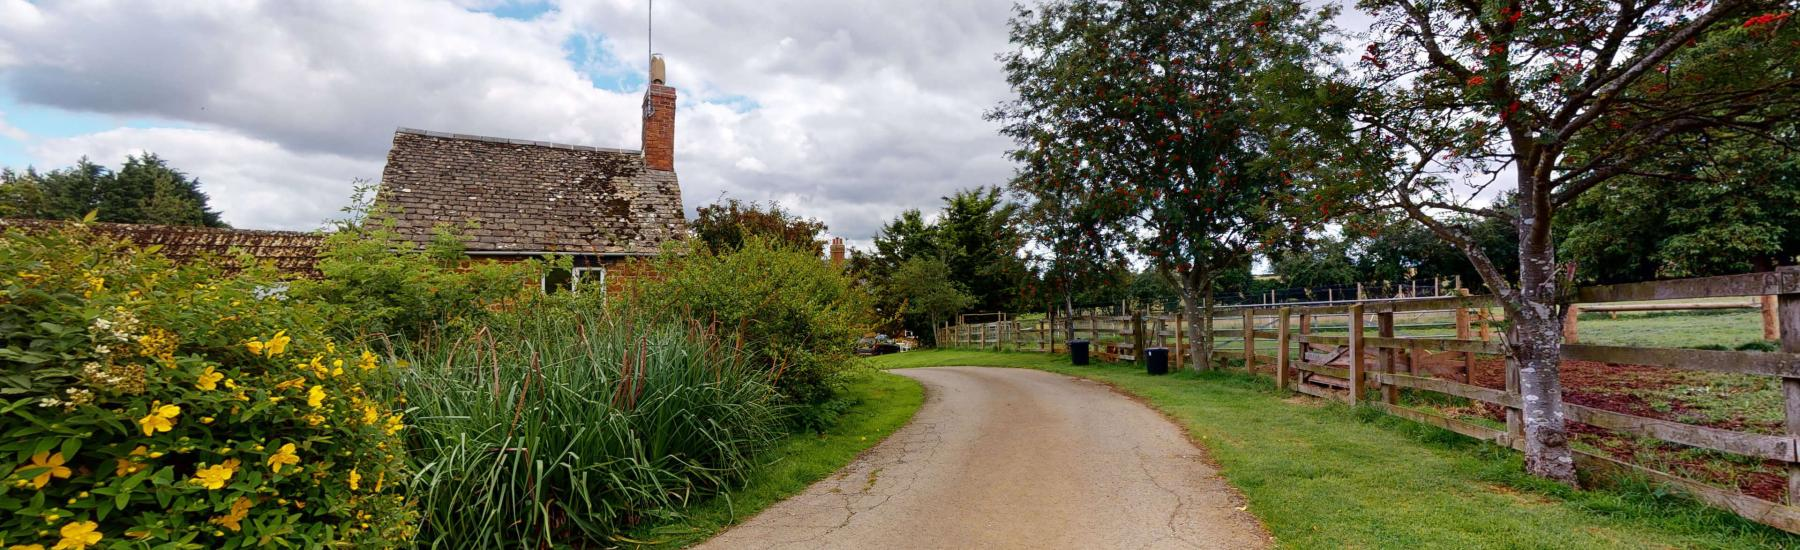 Picturesque village with cottages made from honey coloured stone